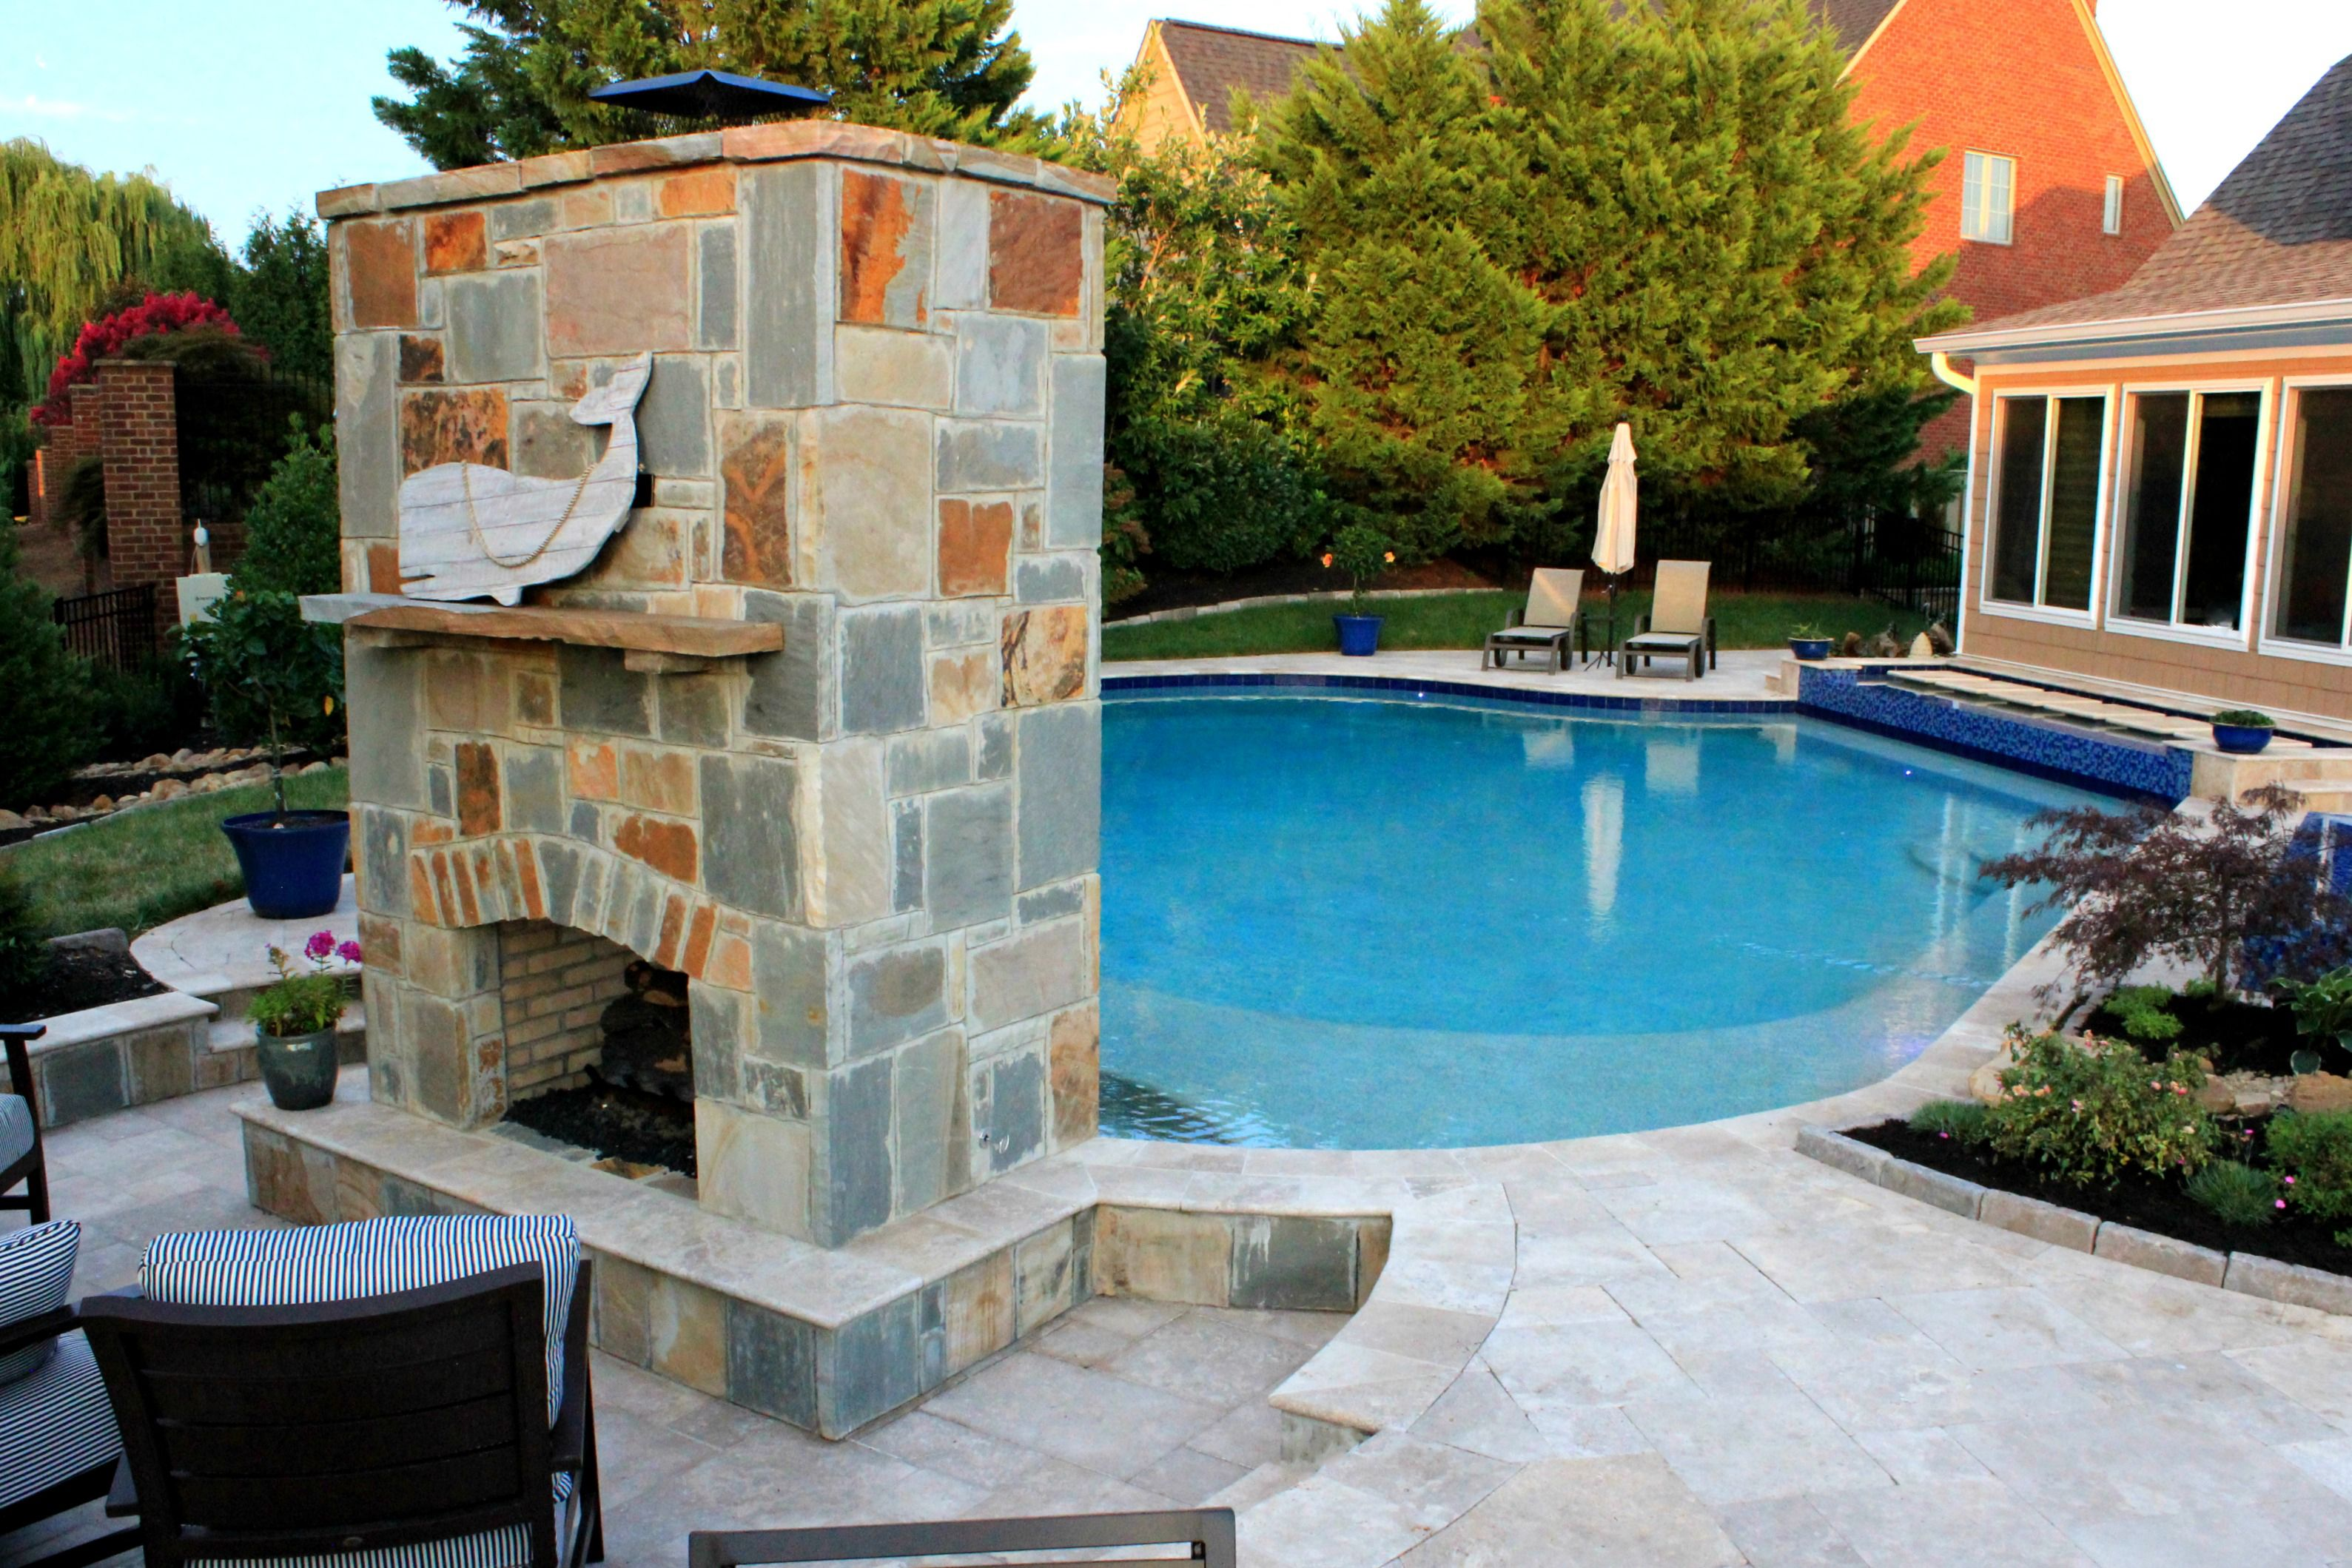 Sheer Wall Descent Features On A Gunite Concrete Pool, With